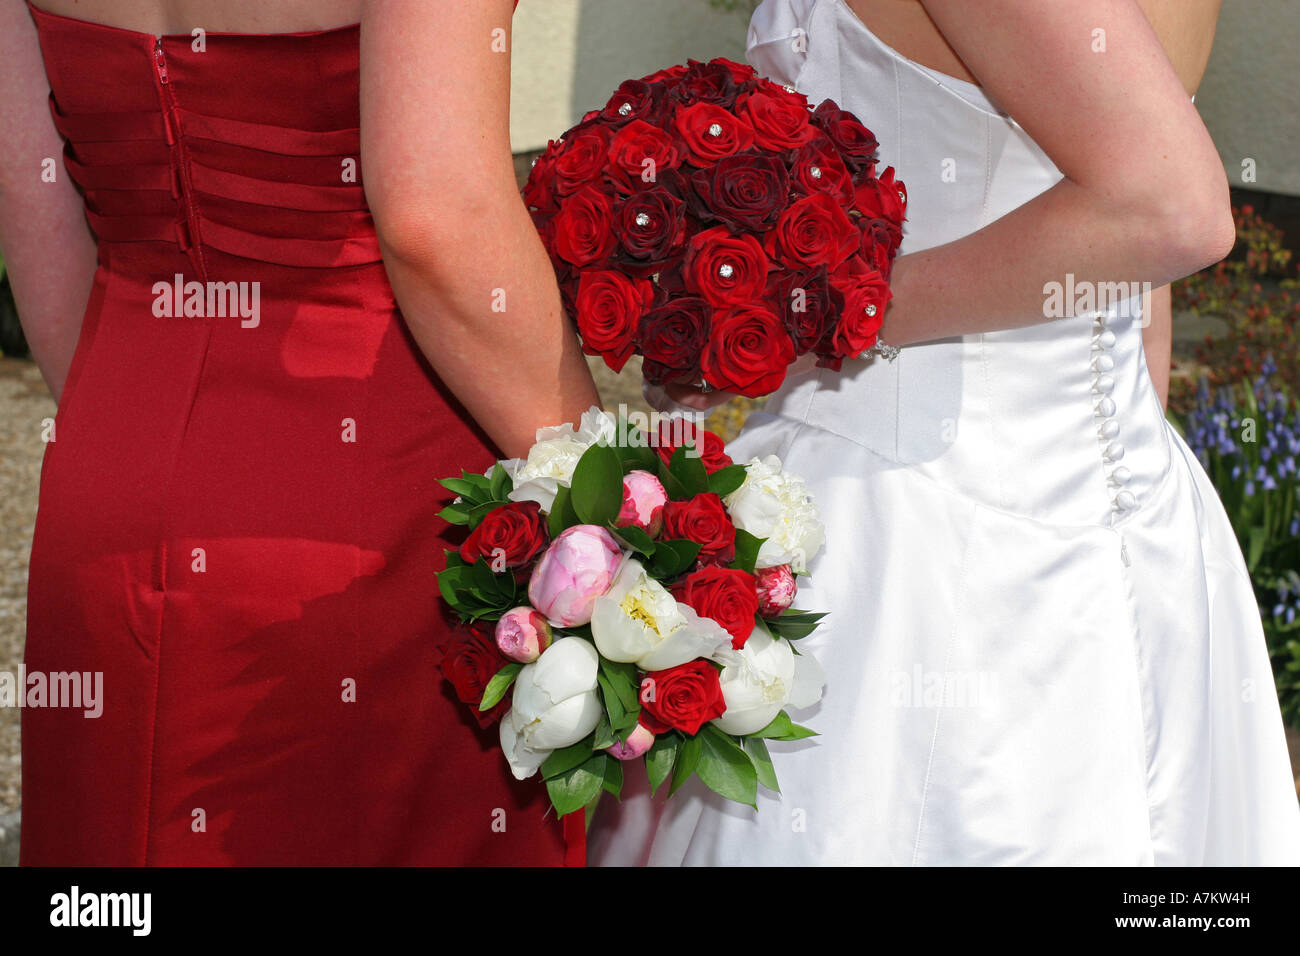 A Bride In White Wedding Dress Holds Red Rose Flower Bouquet On Top